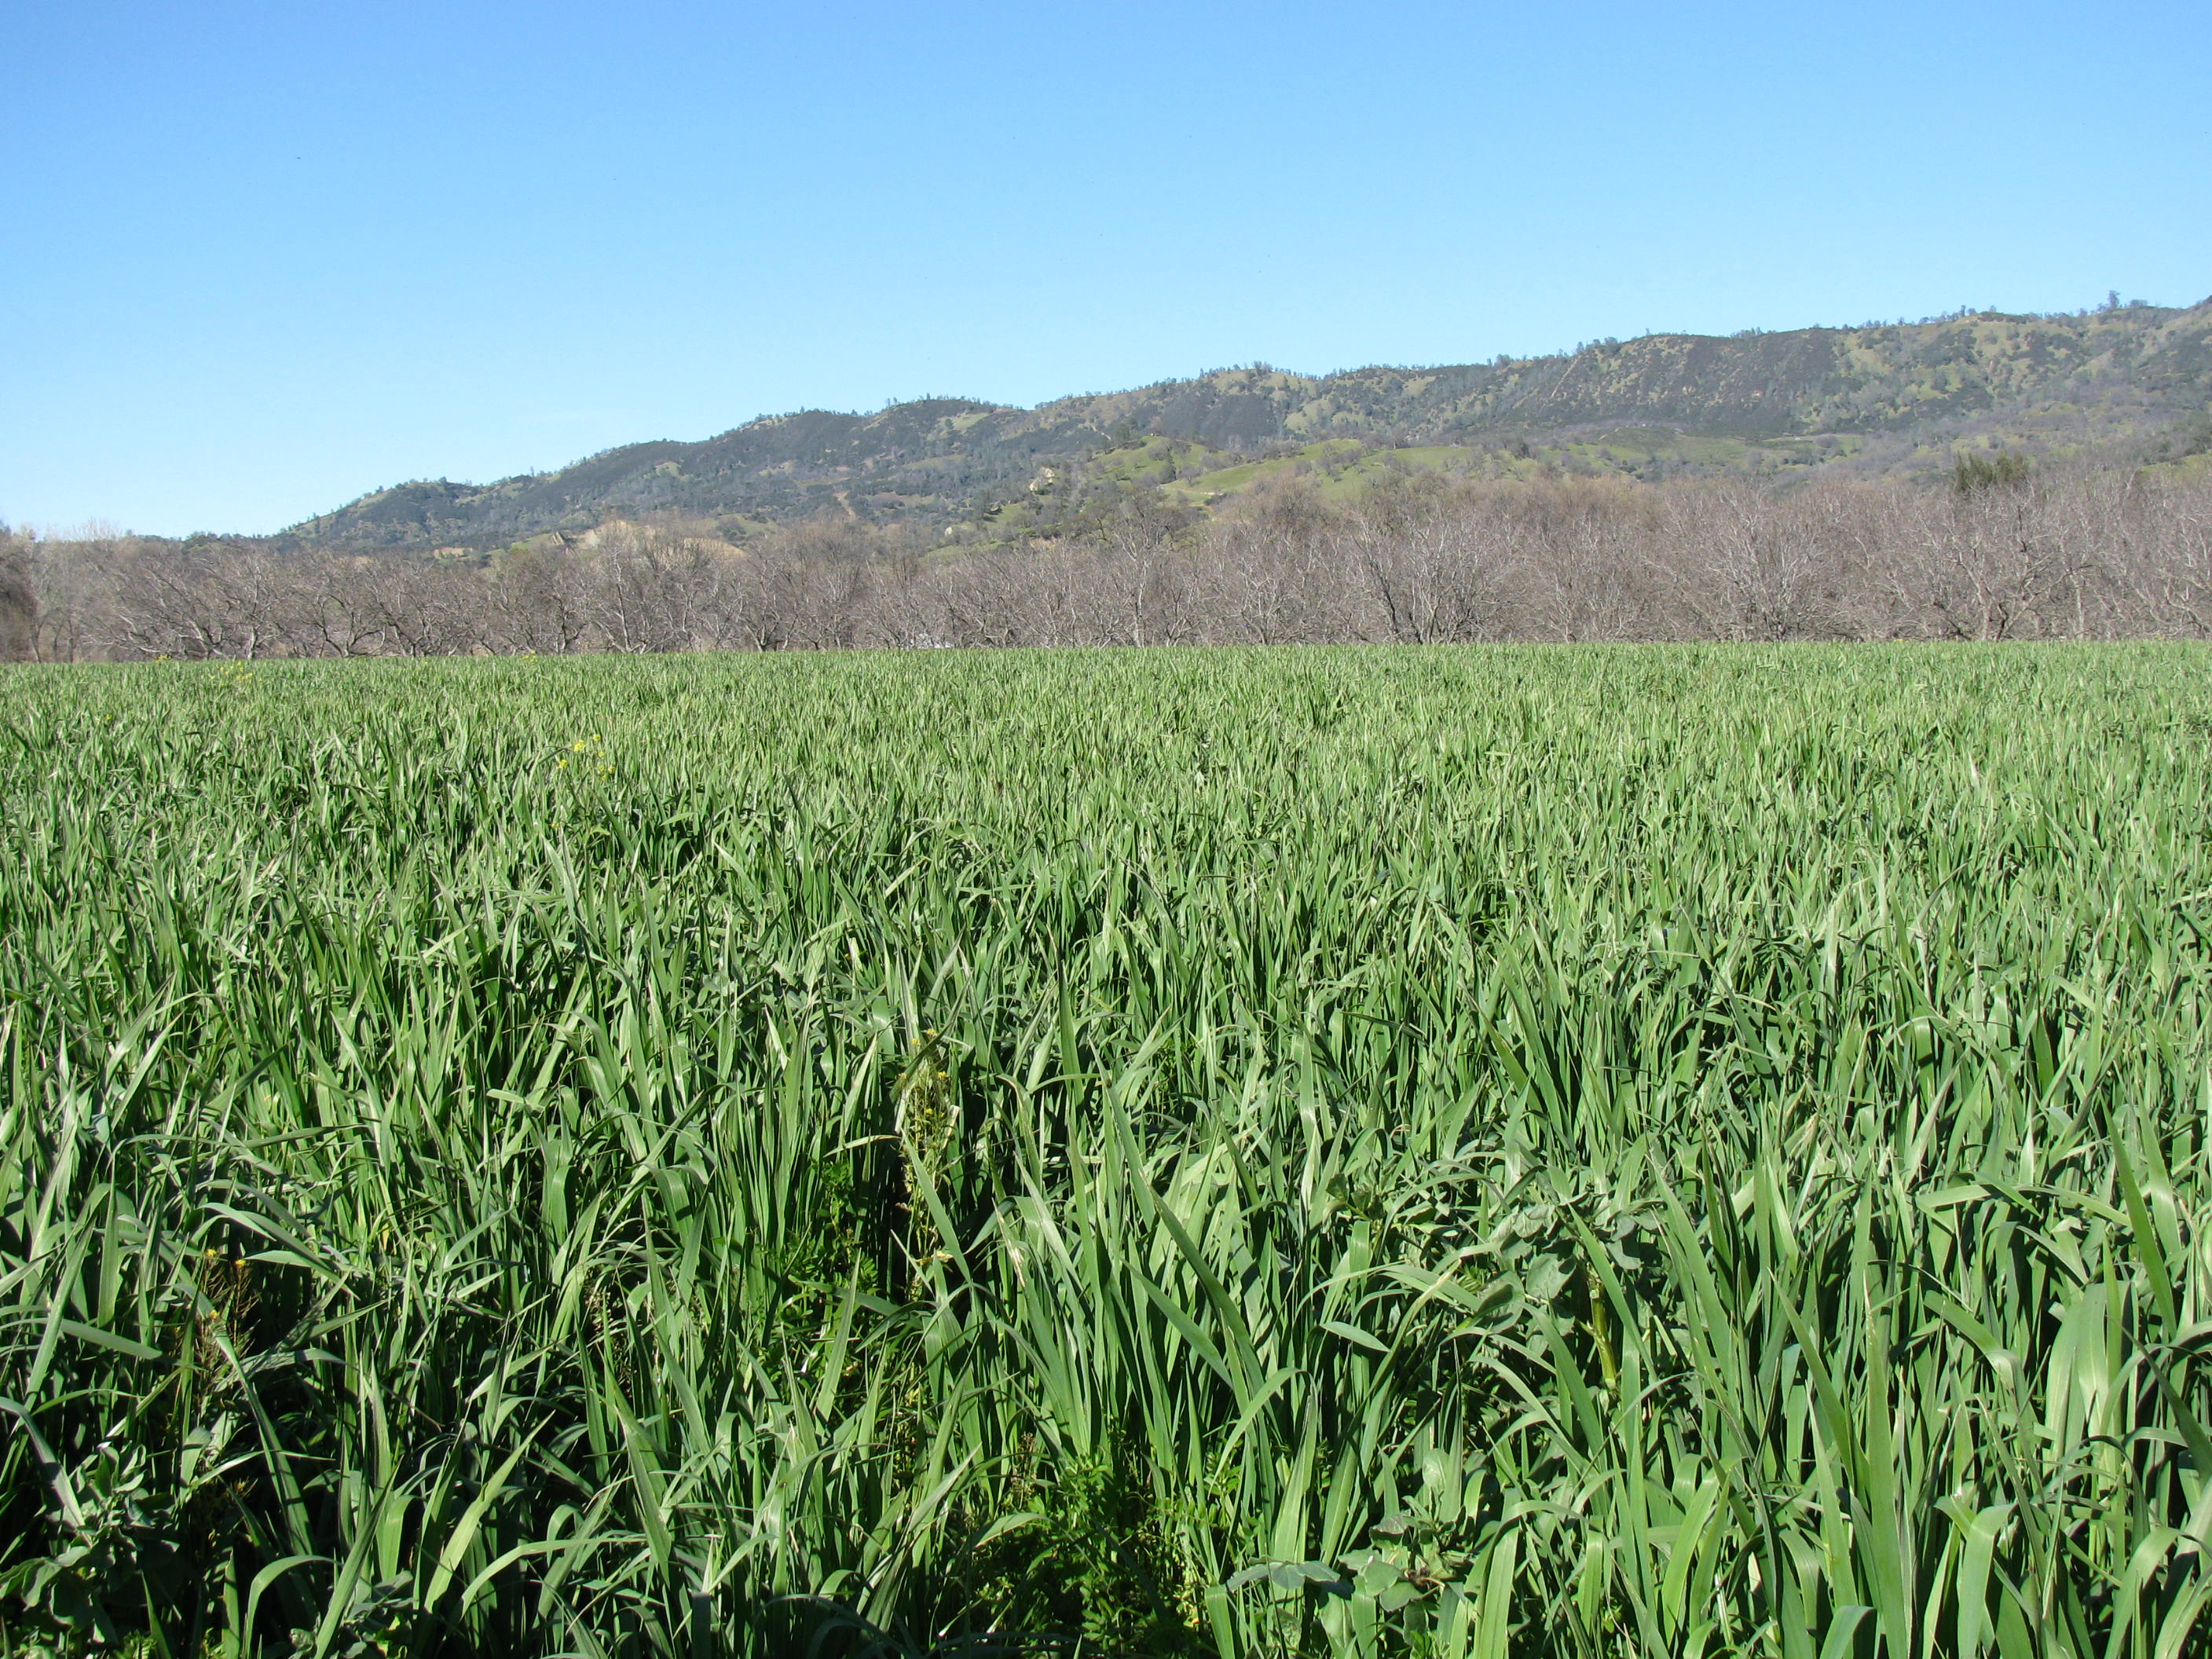 Field of green rye and legume with mountains in the background and blue sky